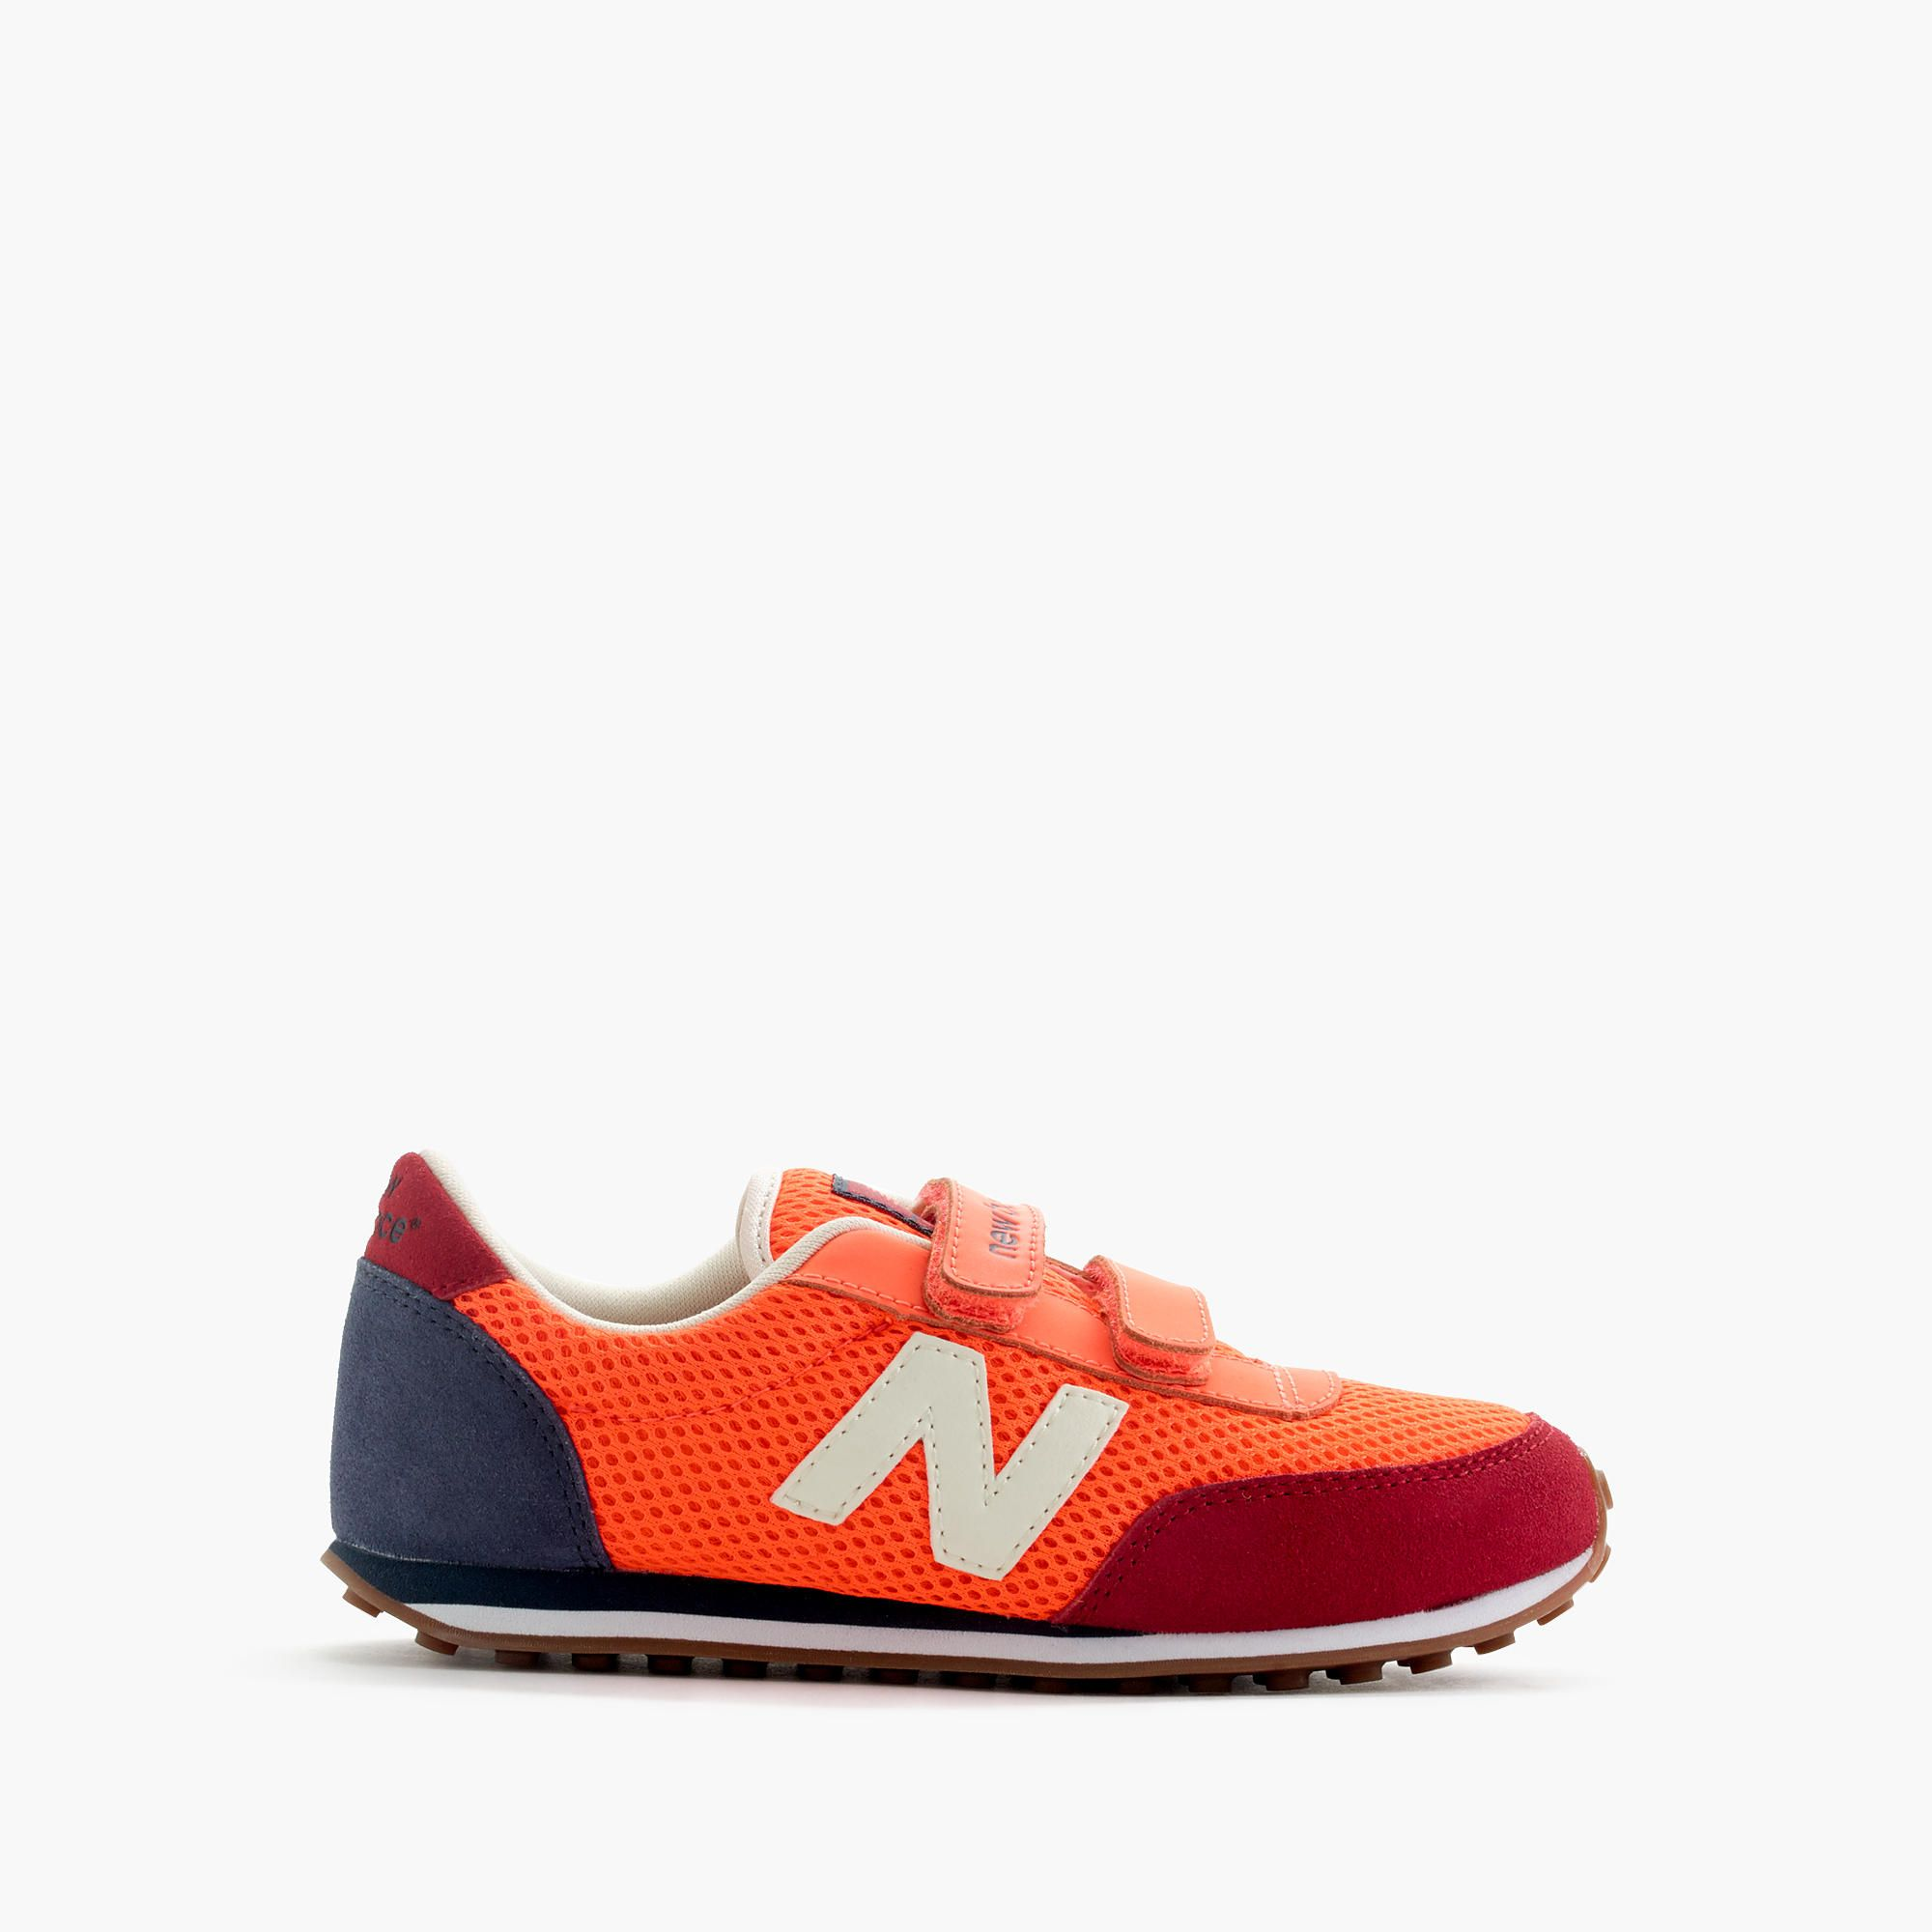 Kids' New Balance® for crewcuts 410 velcro sneakers